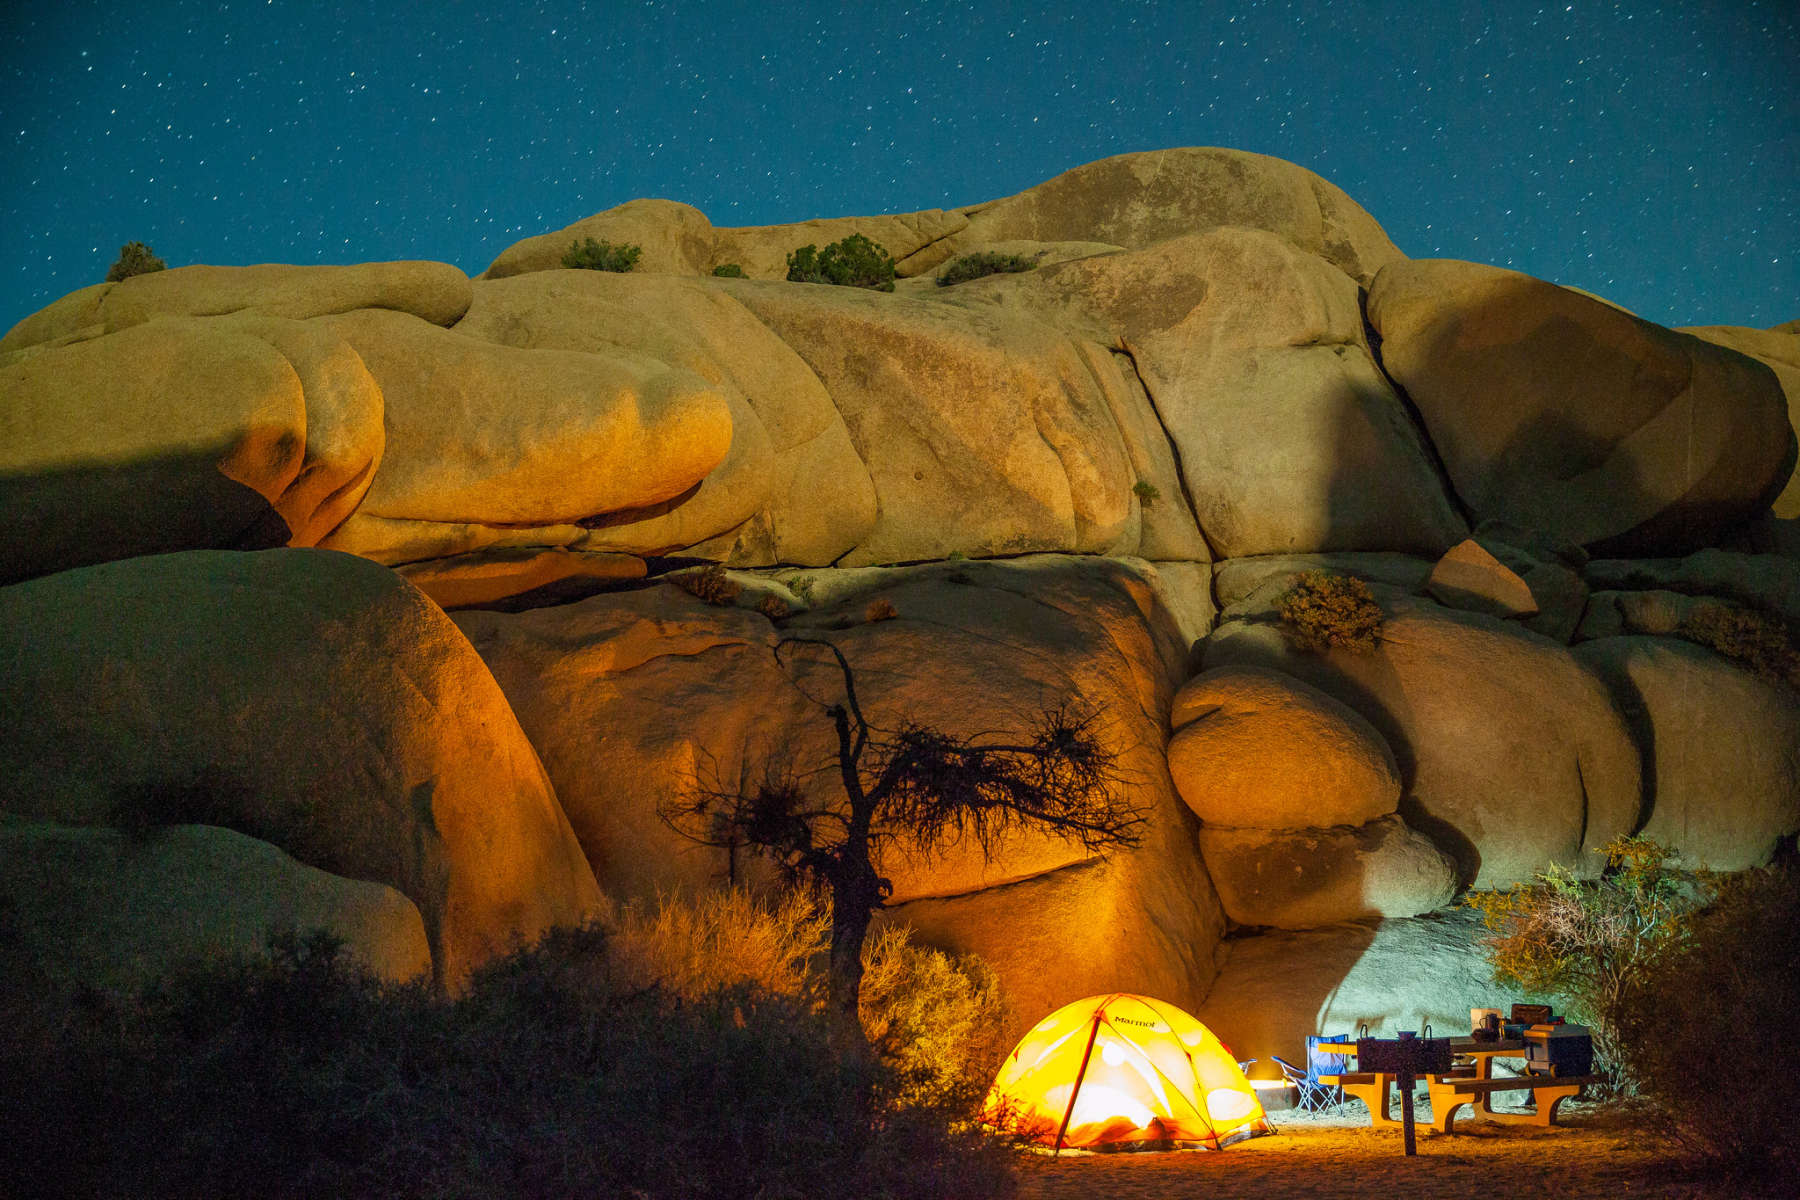 jumbo rocks campground, joshua tree, ca: 51 hipcamper reviews and